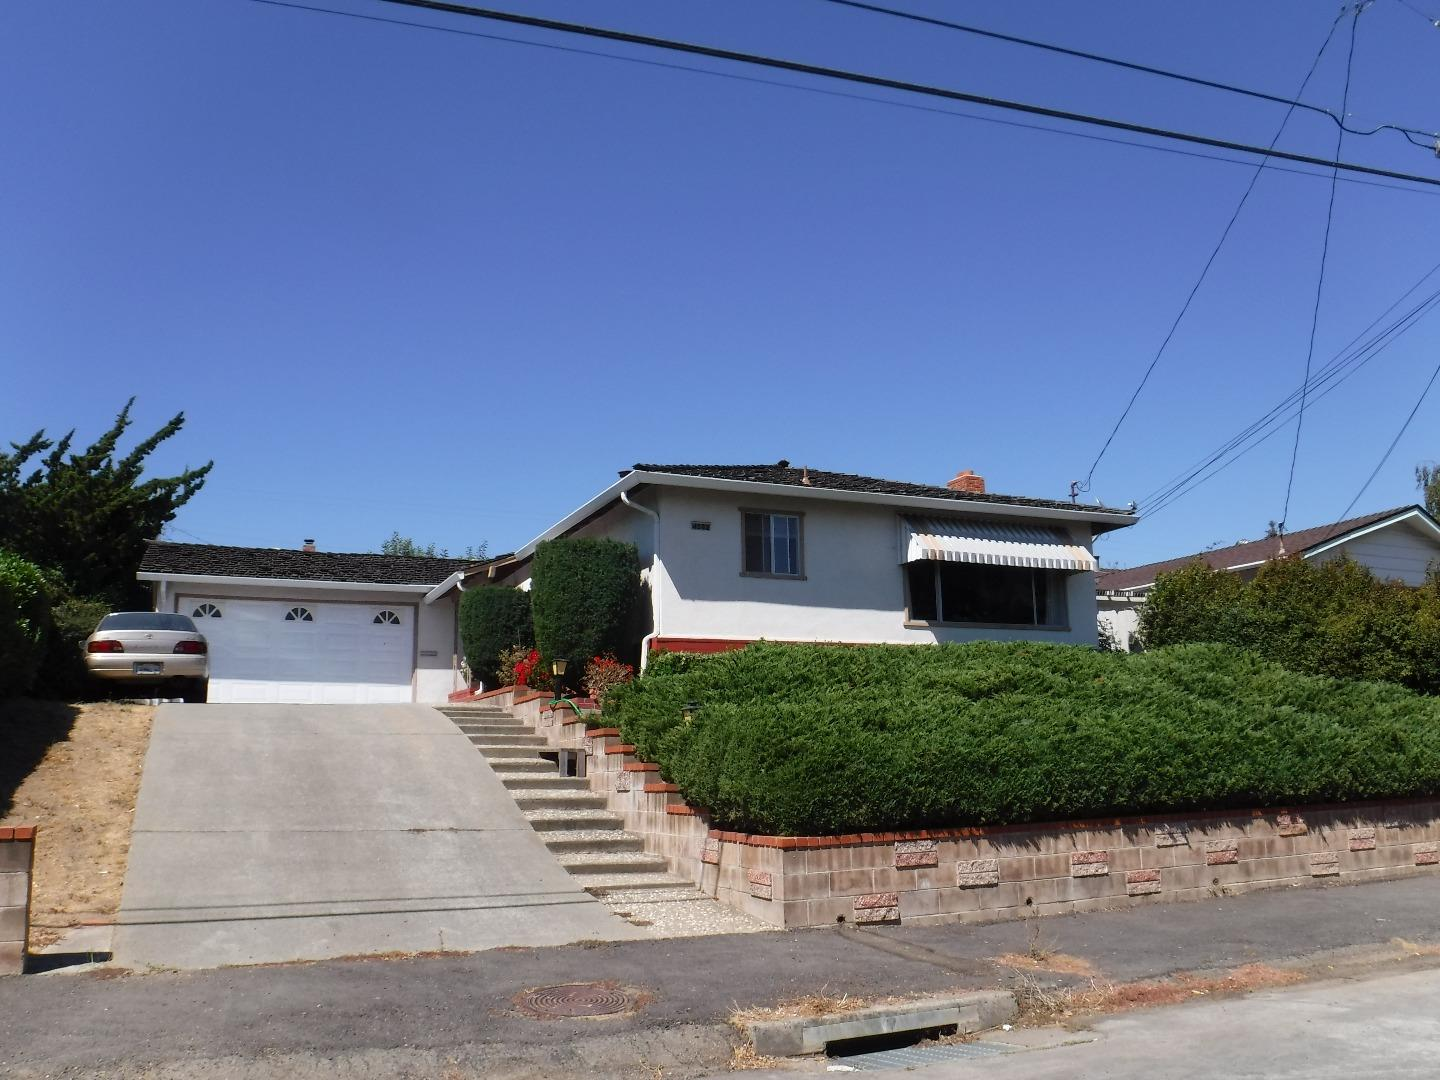 Single Family Home for Sale at 4522 Edwards Lane 4522 Edwards Lane Castro Valley, California 94546 United States